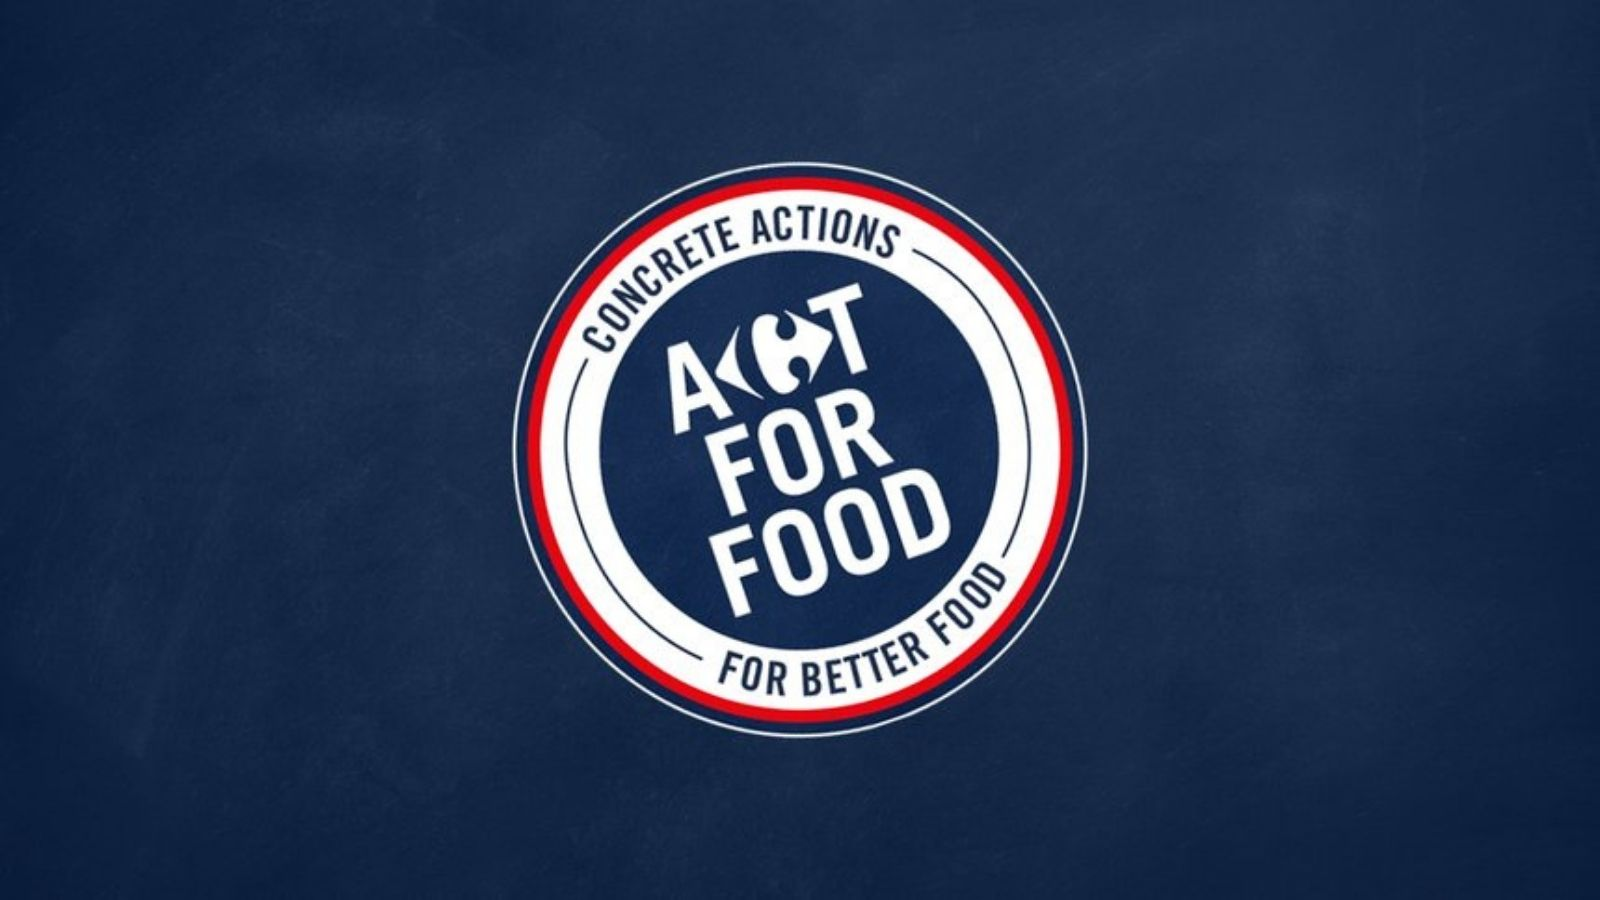 Act for Food logo